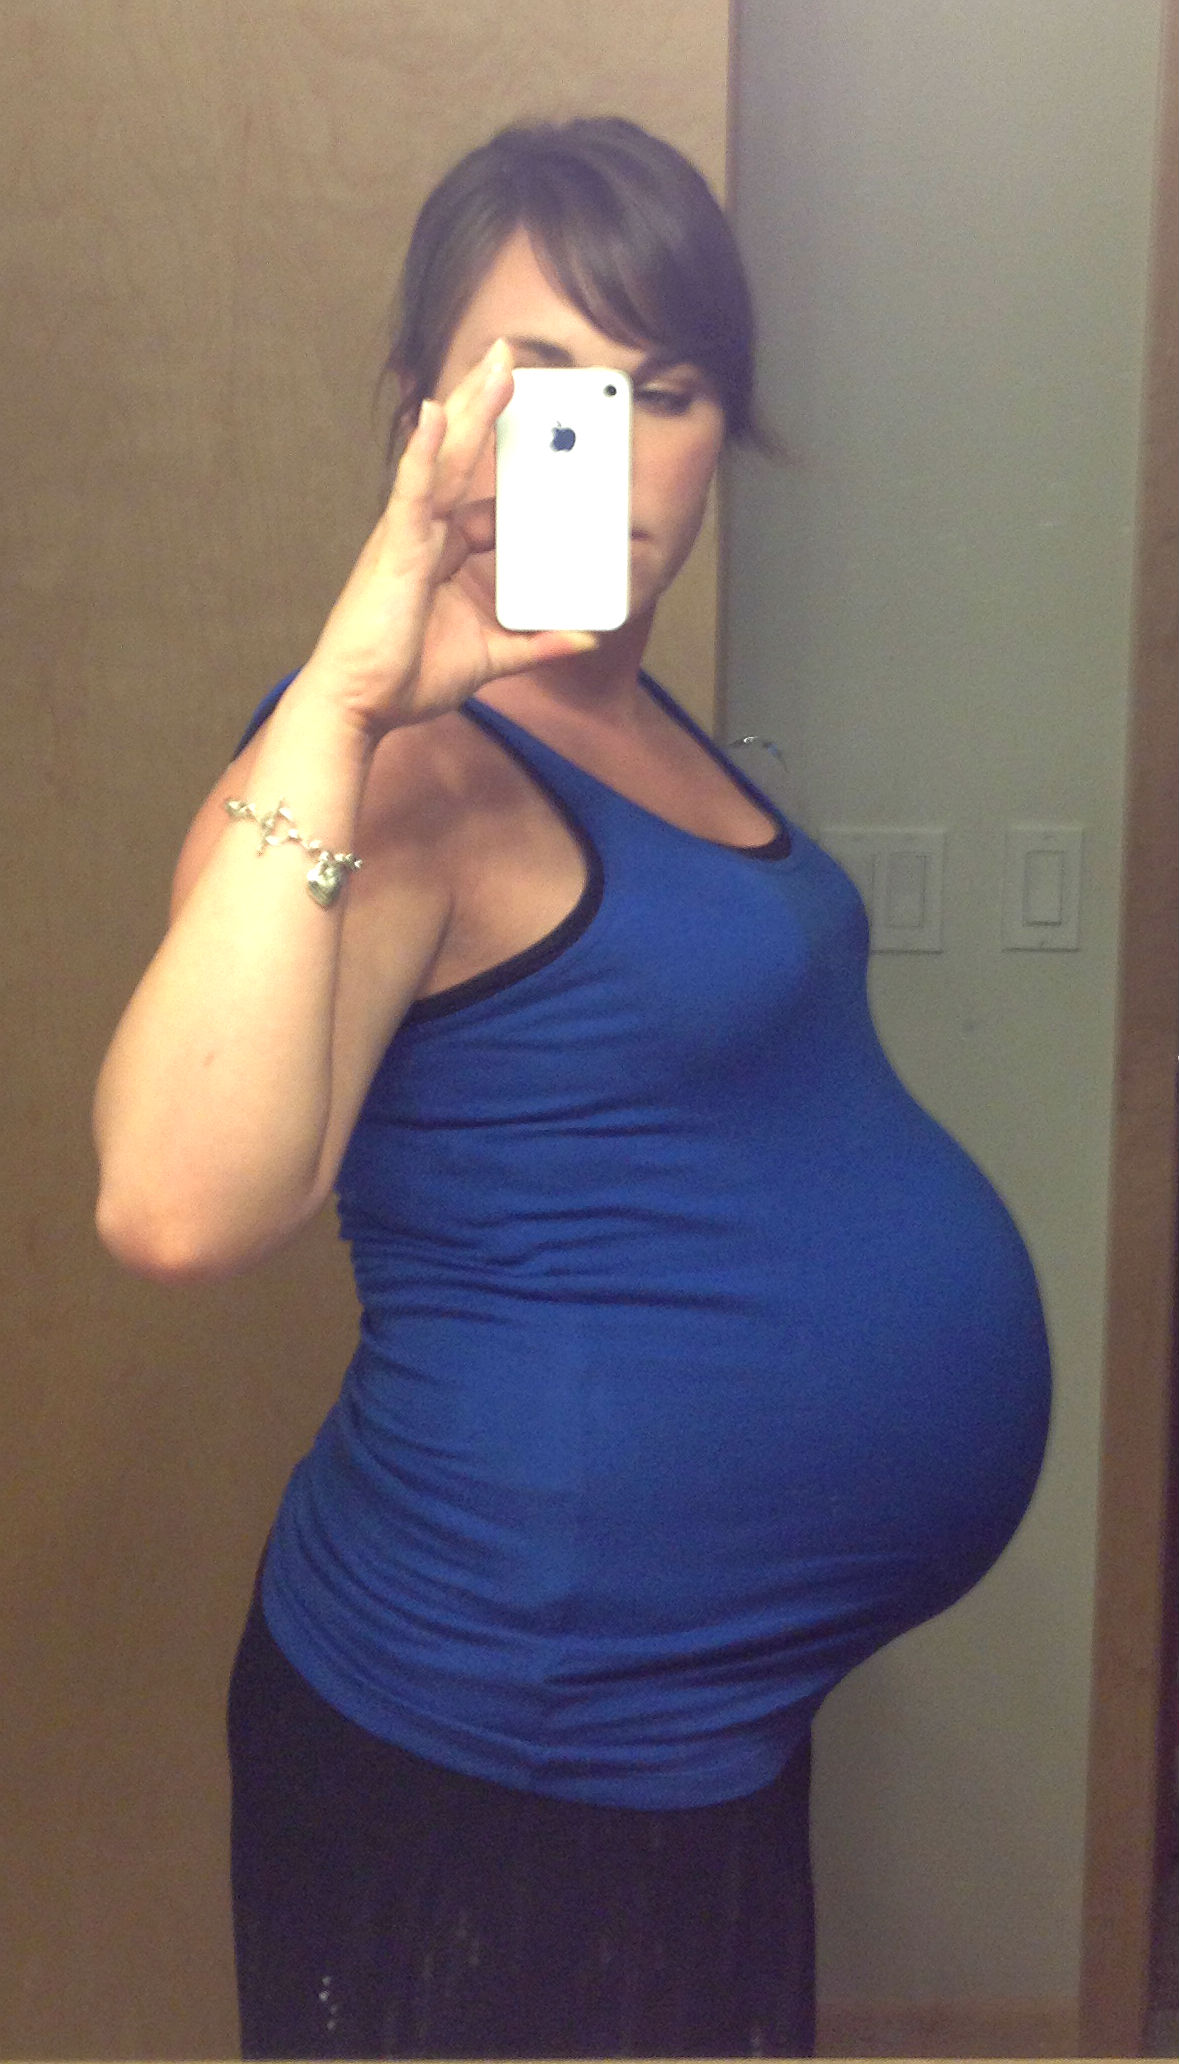 Getting Fit Post Pregnancy | Just Be. Blog. 39 Weeks Pregnant Fetus